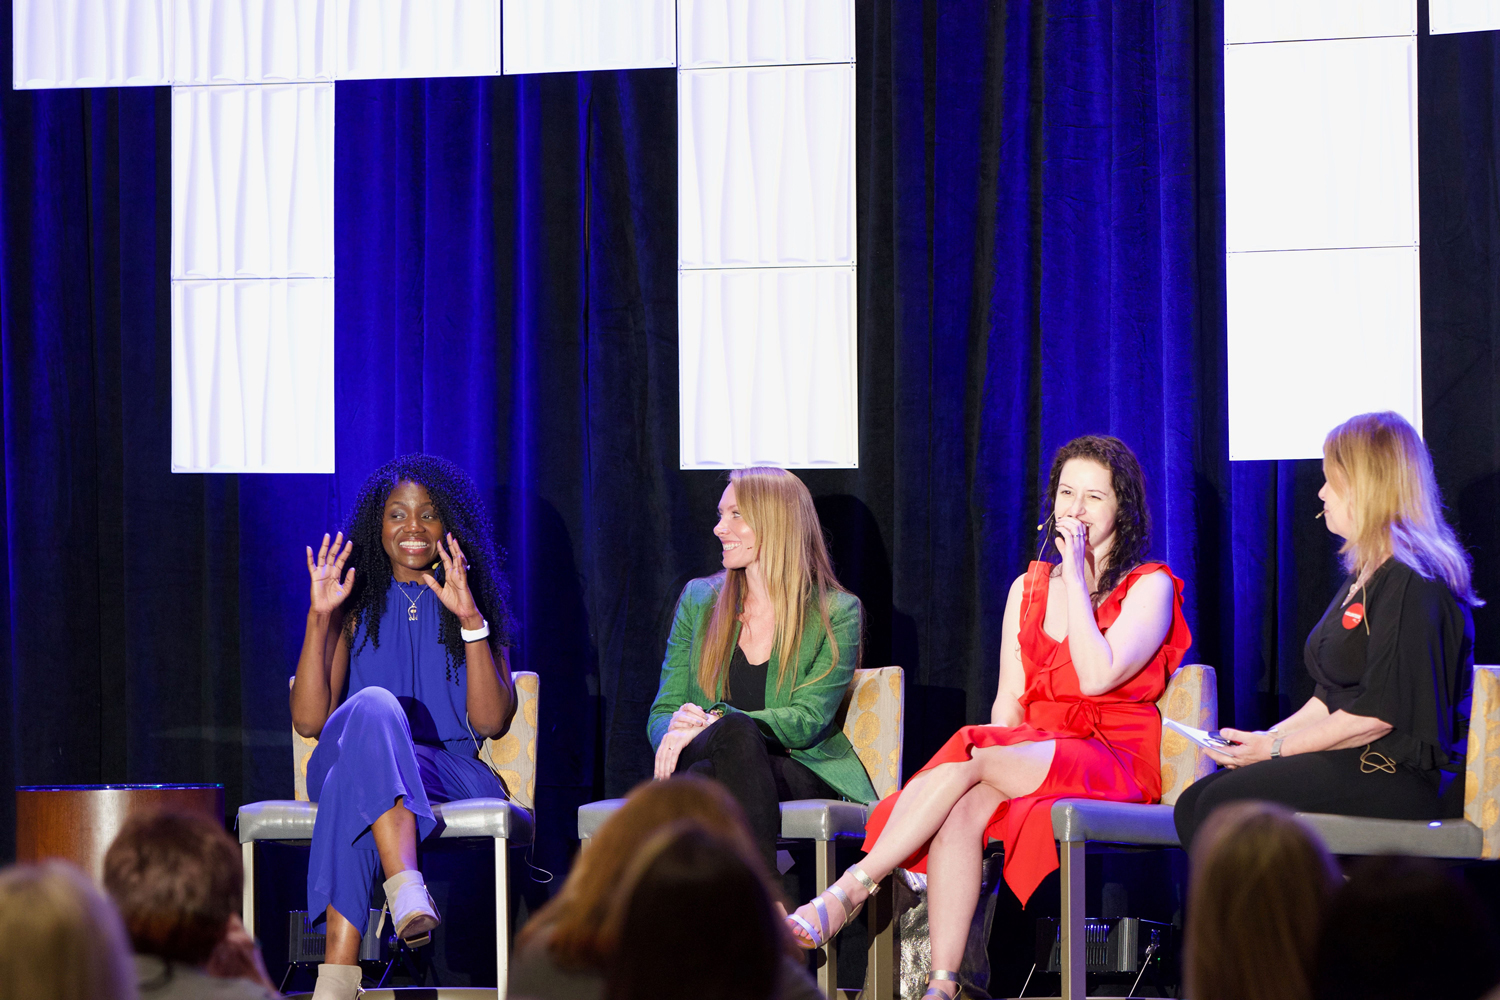 Nana Malone, Meredith Wild, K.A. Linde, and moderator Karen Rawson are seated on a stage addressing the audience at a presentation during Inkers Con.